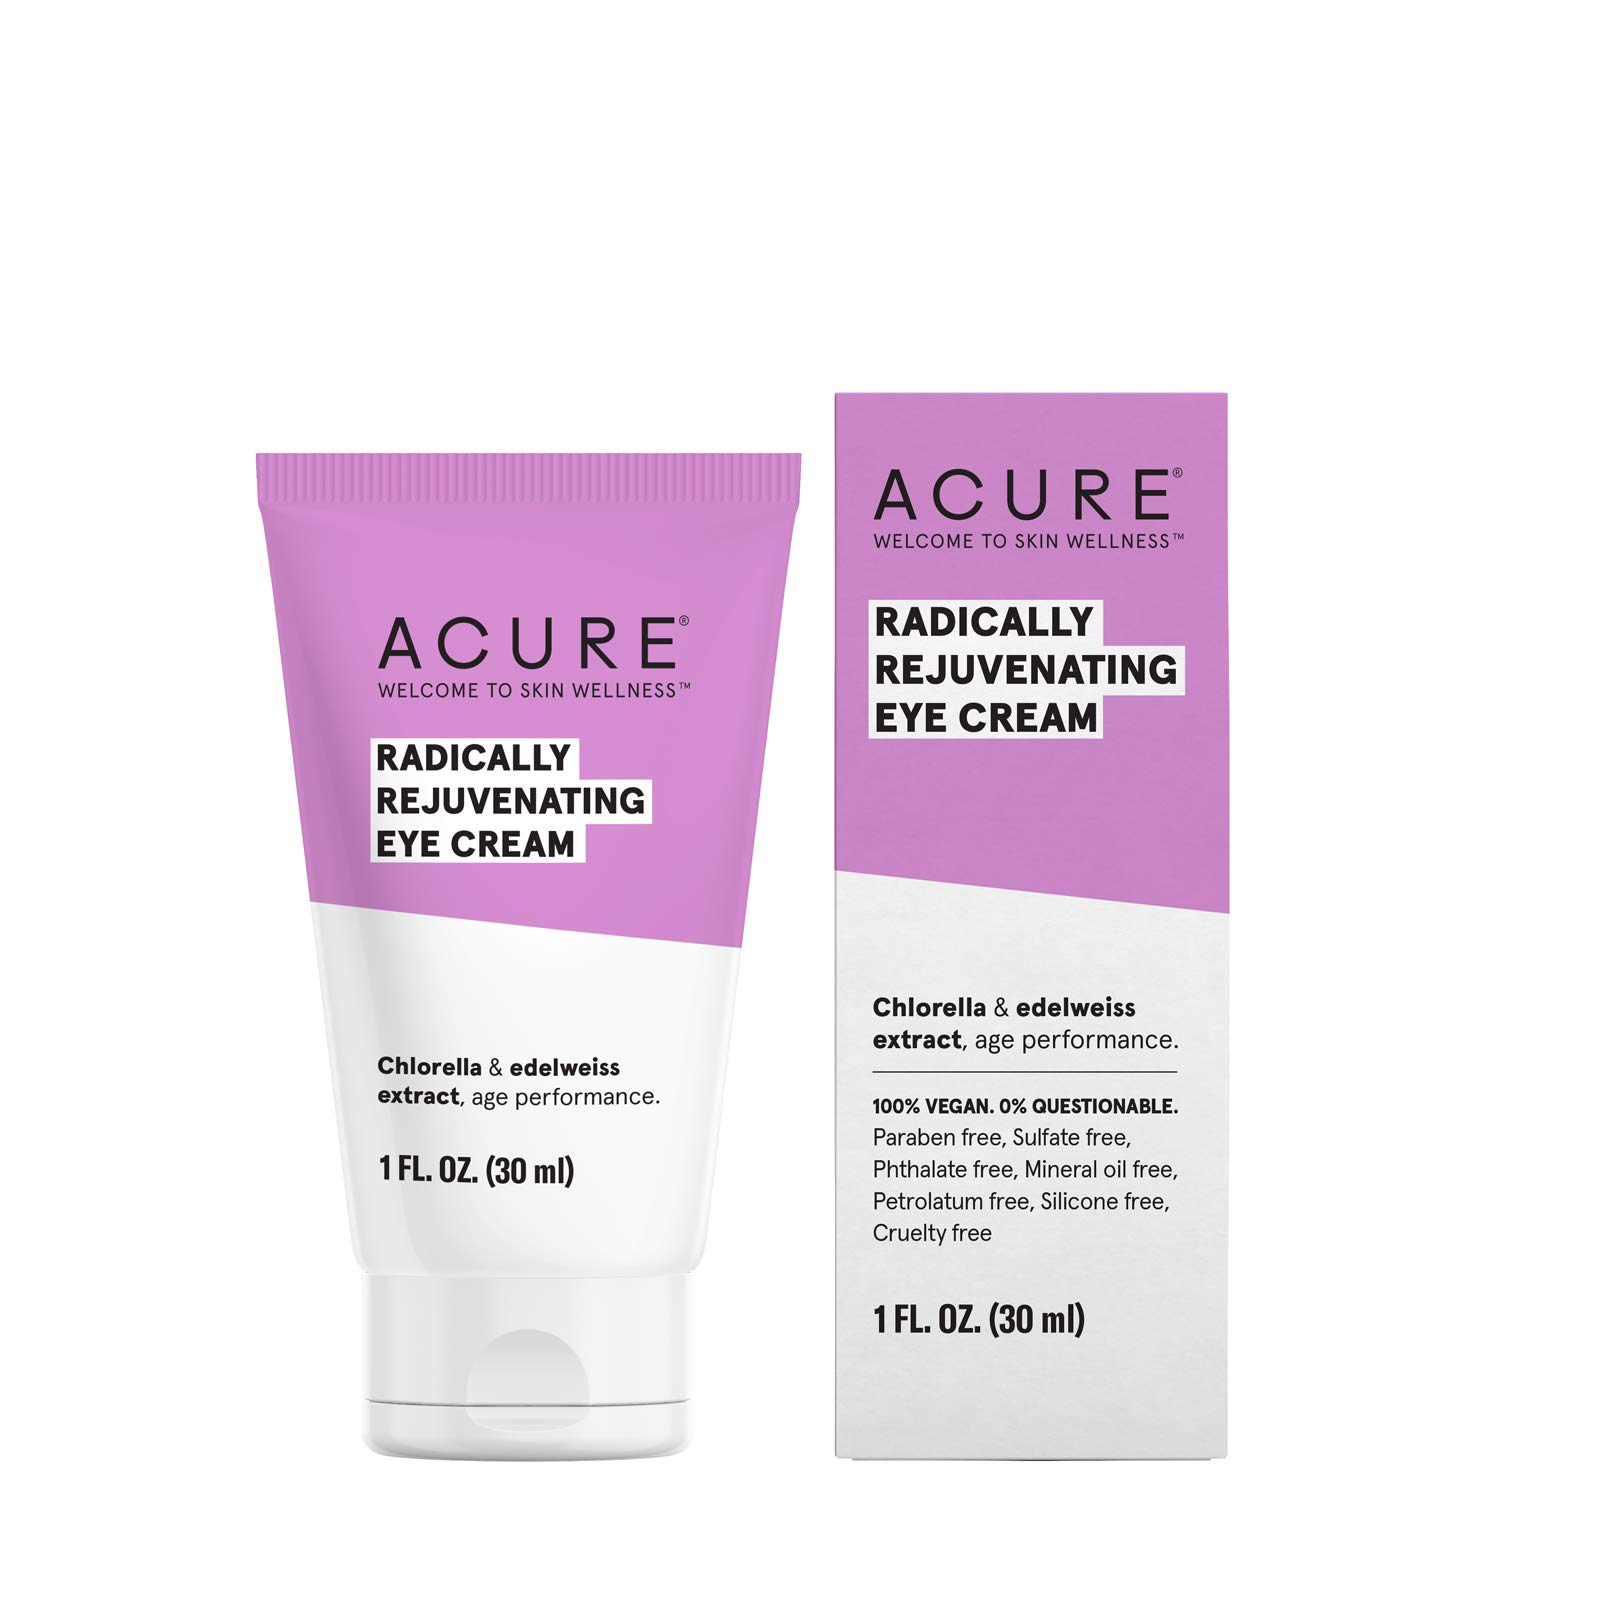 ACURE Radically Rejuvenating Eye Cream | 100% Vegan | Provides Anti-Aging Support | Chlorella & Edelweiss Extract - Hydrates & Minimizes  Fine Lines , Ivory 1 Fl Oz